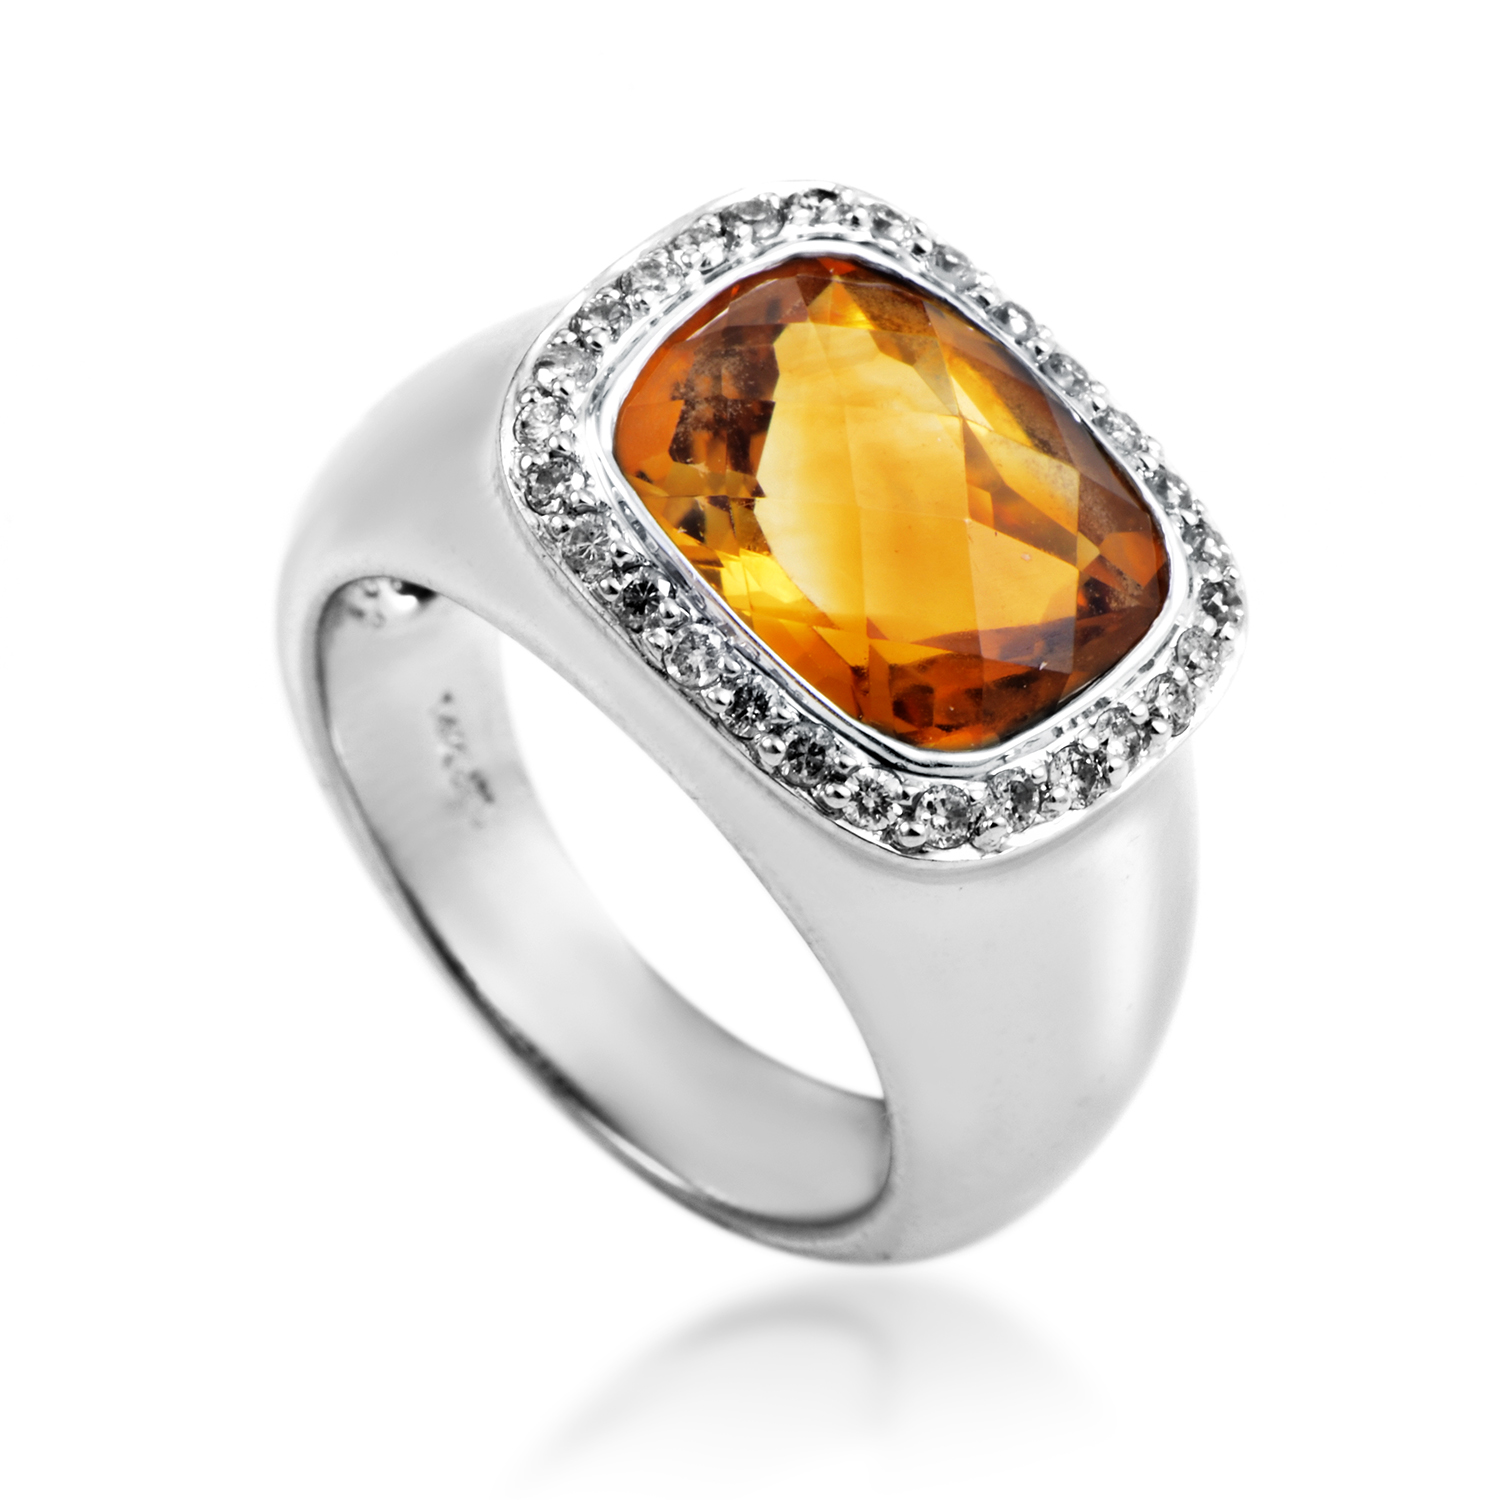 Women's 14K White Gold Diamond & Citrine Ring MFC10-071516